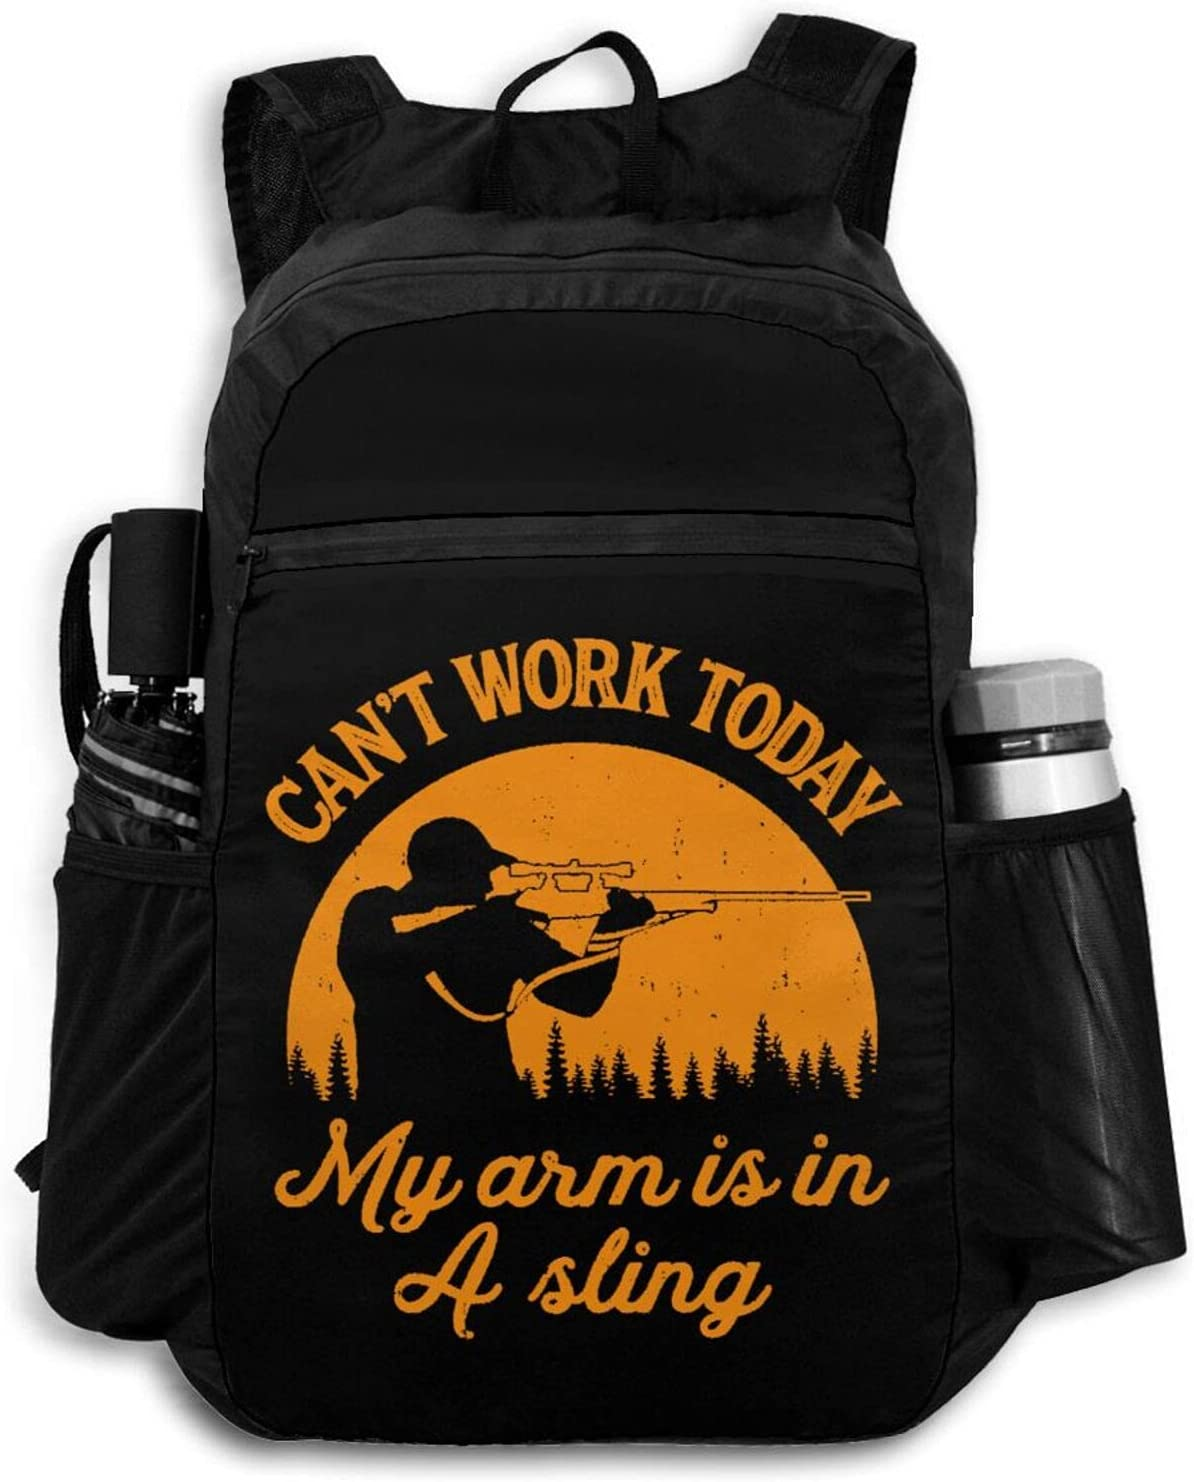 Zolama My Arm OFFicial mail order is in A Sling Backpacks Packabl Cute Men for Women sold out